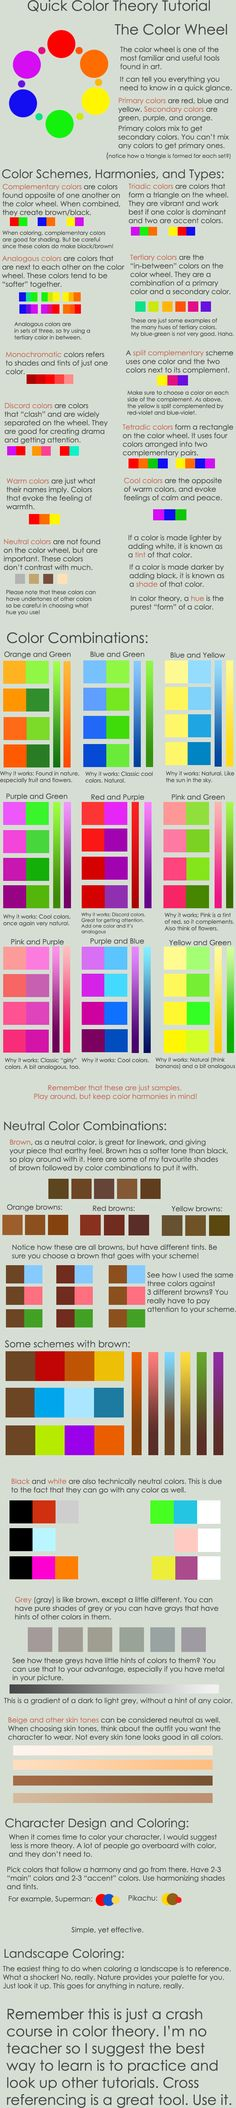 Color Theory Crash Course. Good info.